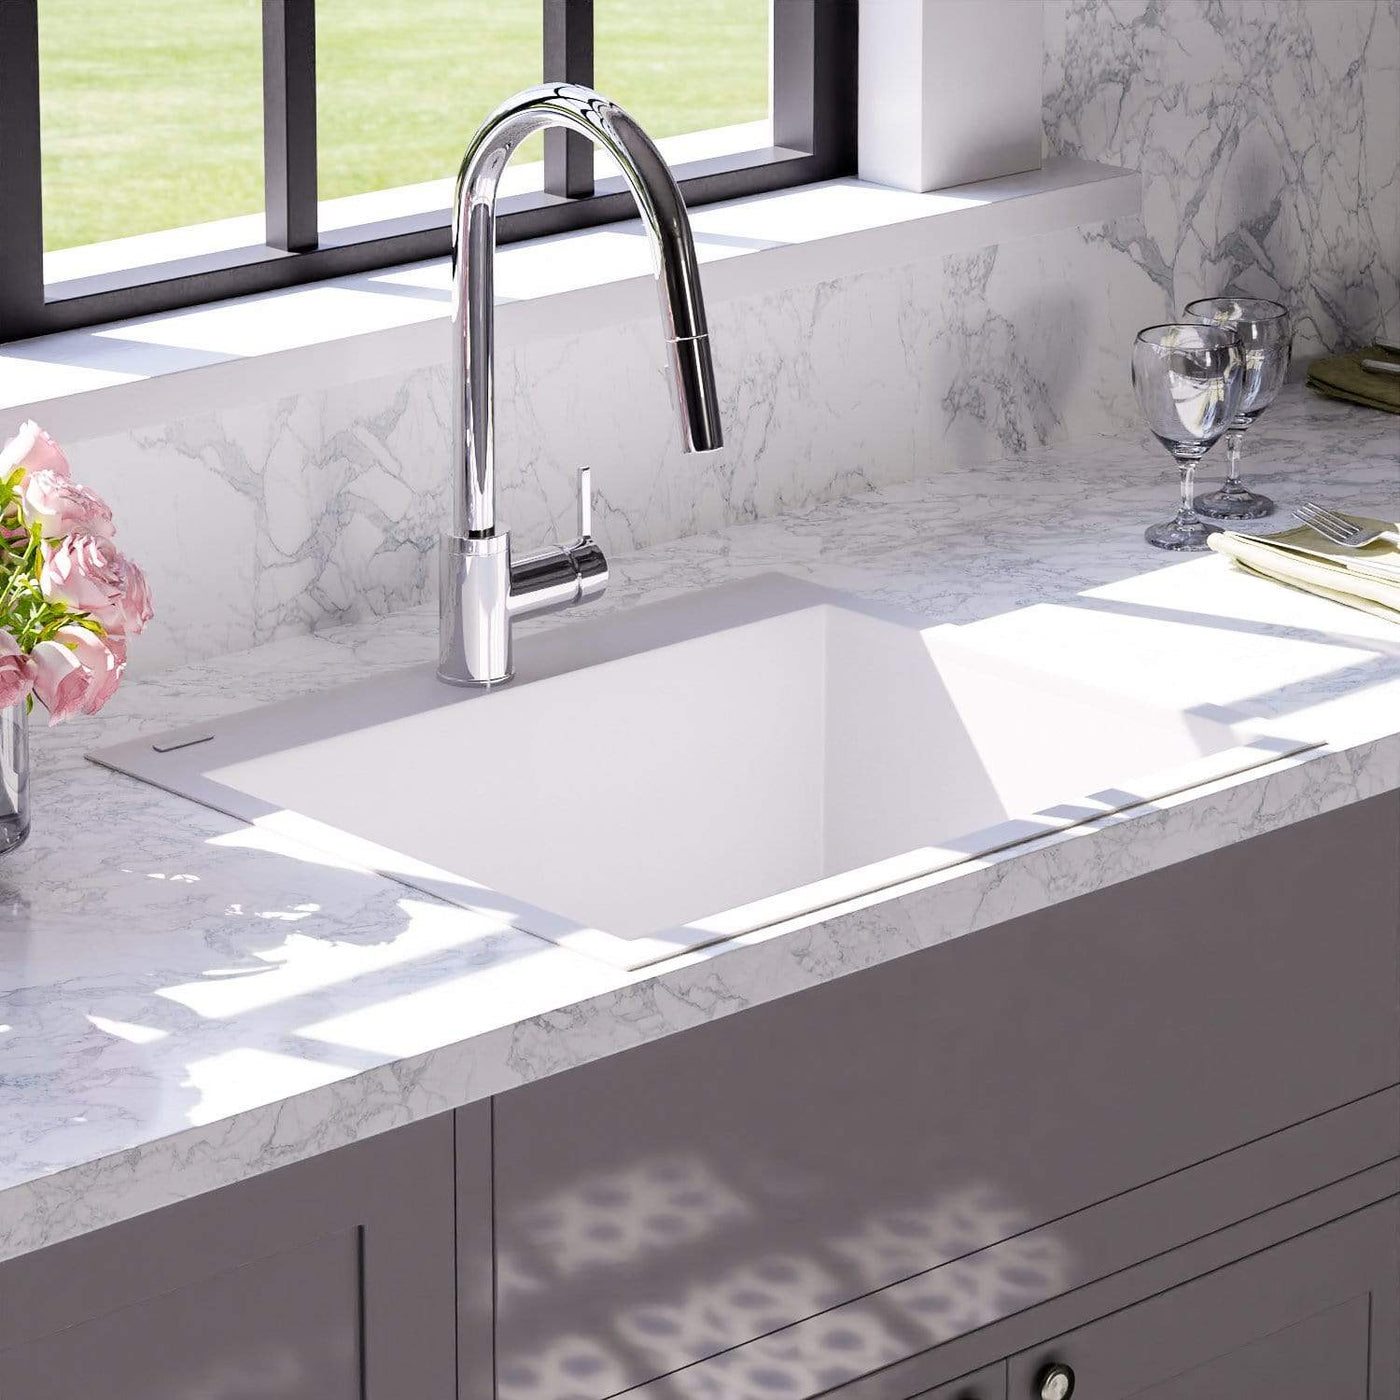 24 Canika Granite Composite Sink Pure White Magnus Home Products